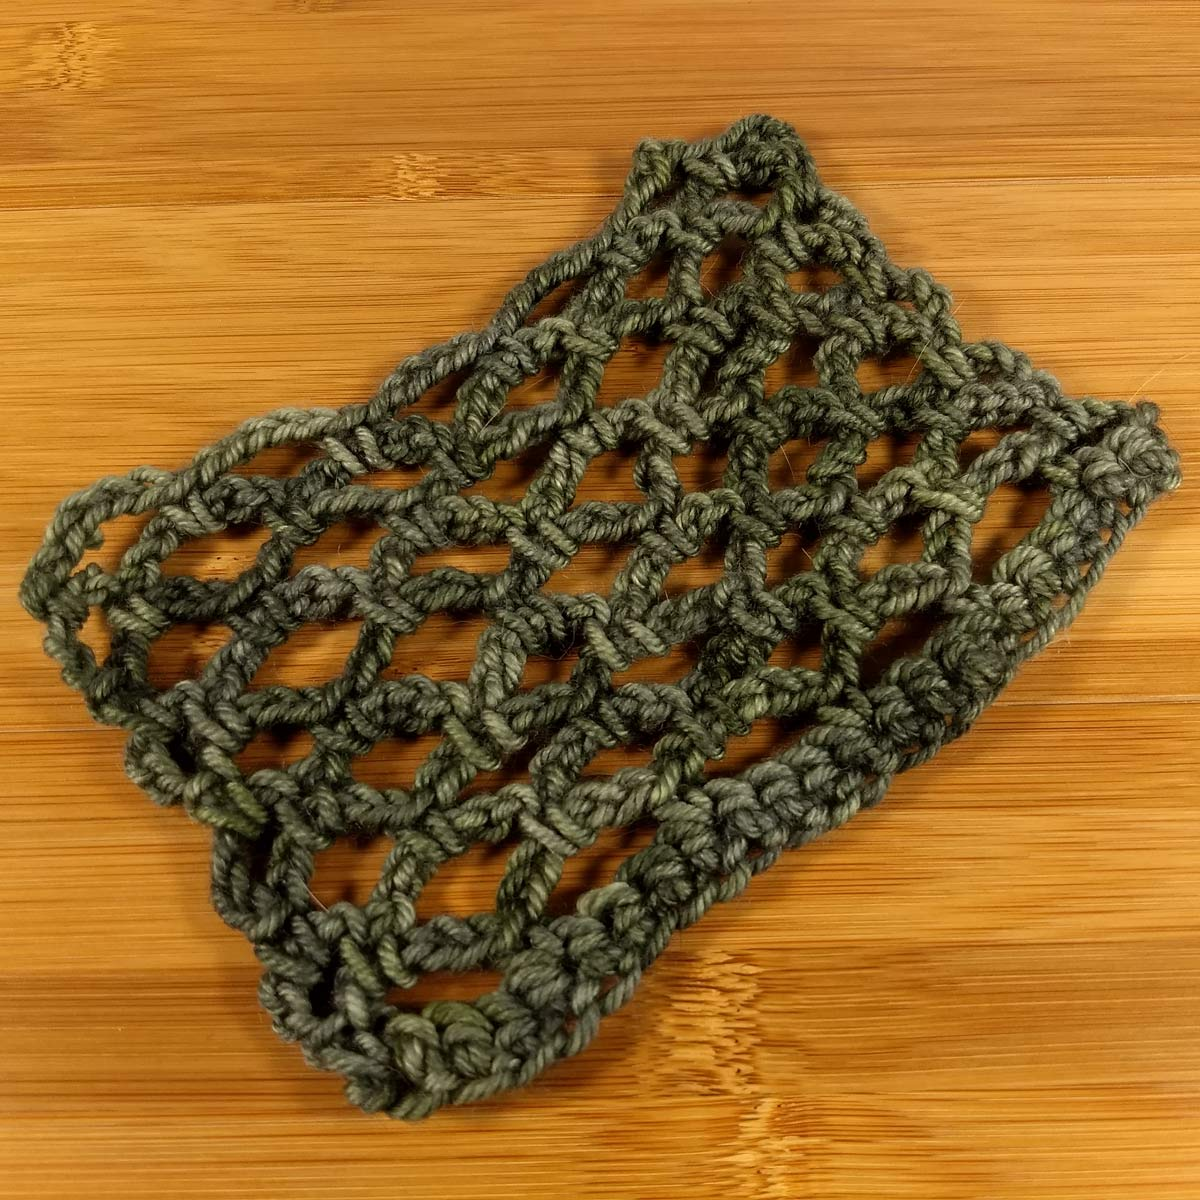 Net crochet stitch pattern in For Better or Worsted.